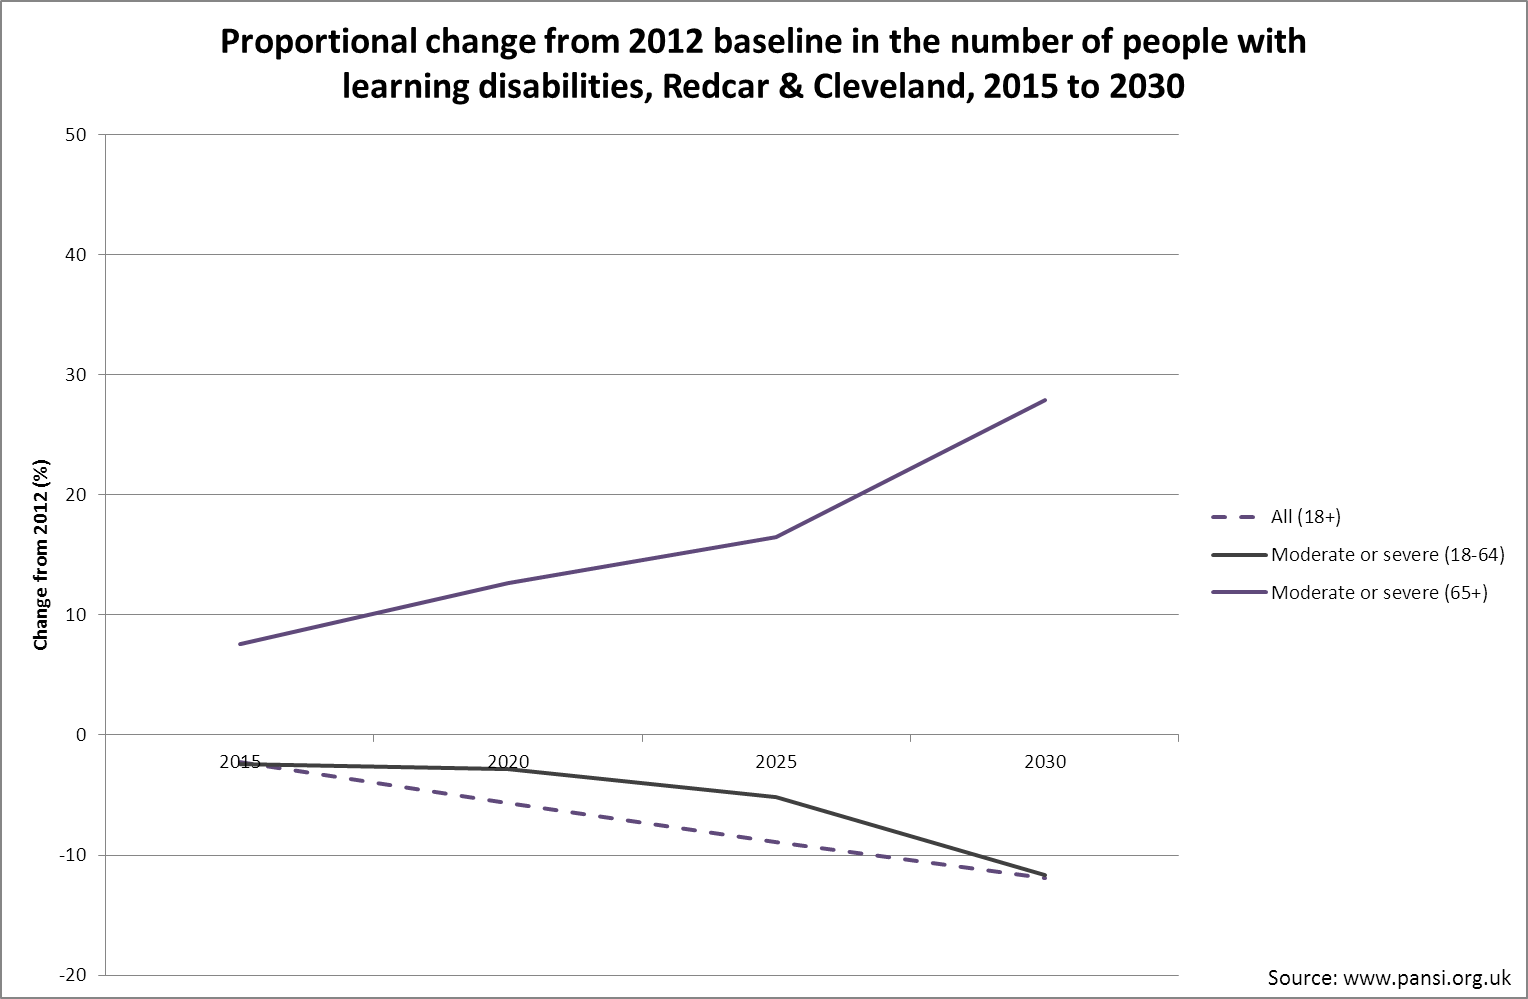 Forecast learning disability changes, Redcar & Cleveland, 2012 to 2030